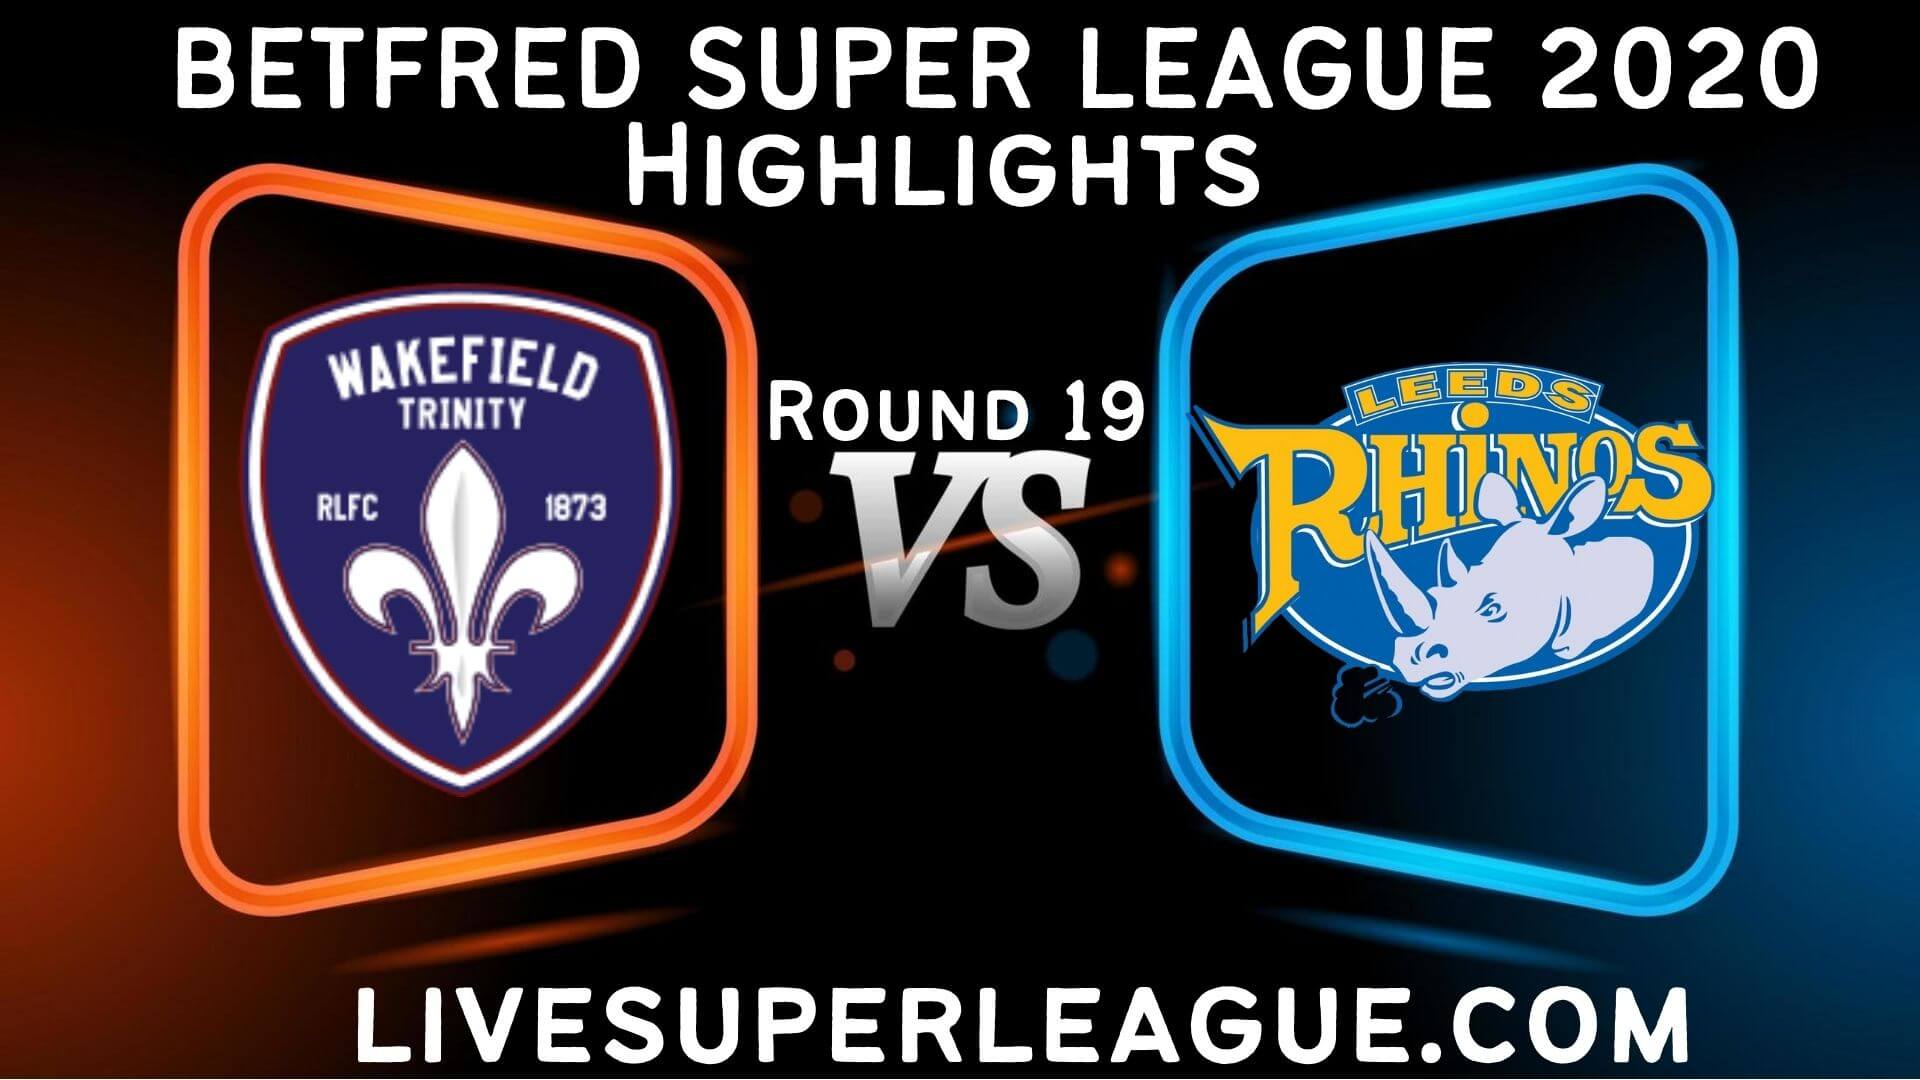 Wakefield Trinity vs Leeds Rhinos Highlights 2020 Rd 19